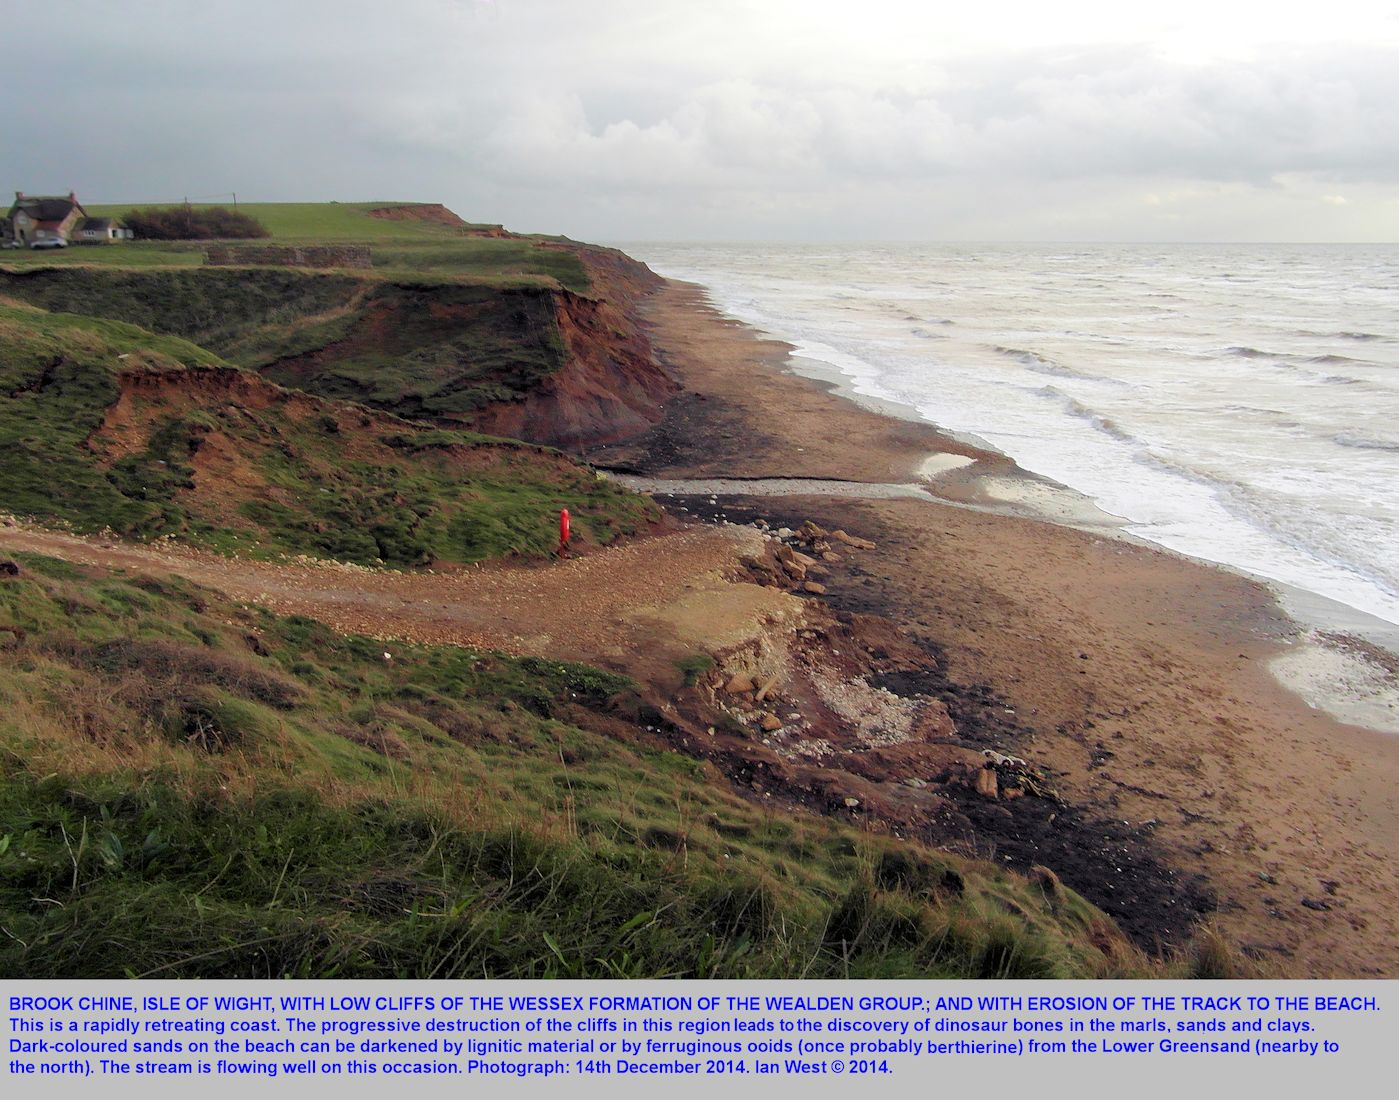 Erosion taking place at Brook Chine, Isle of Wight, 14th December 2014